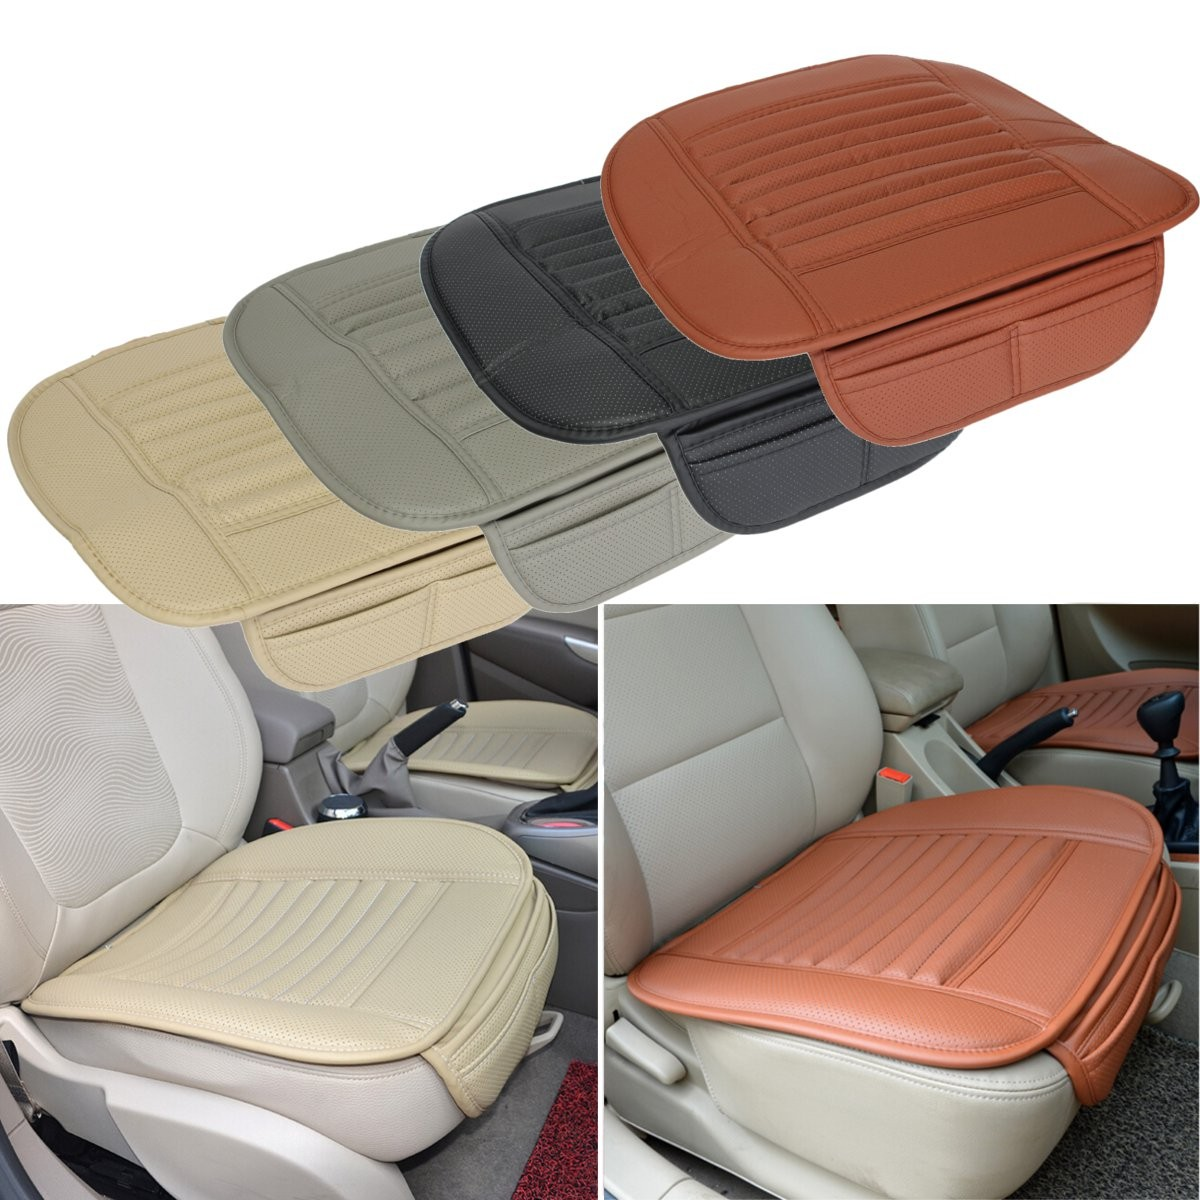 Universal Seatpad PU leather Car seat covers for Auto Car Office Chairs Interior 2017 luxury pu leather auto universal car seat cover automotive for car lada toyota mazda lada largus lifan 620 ix25